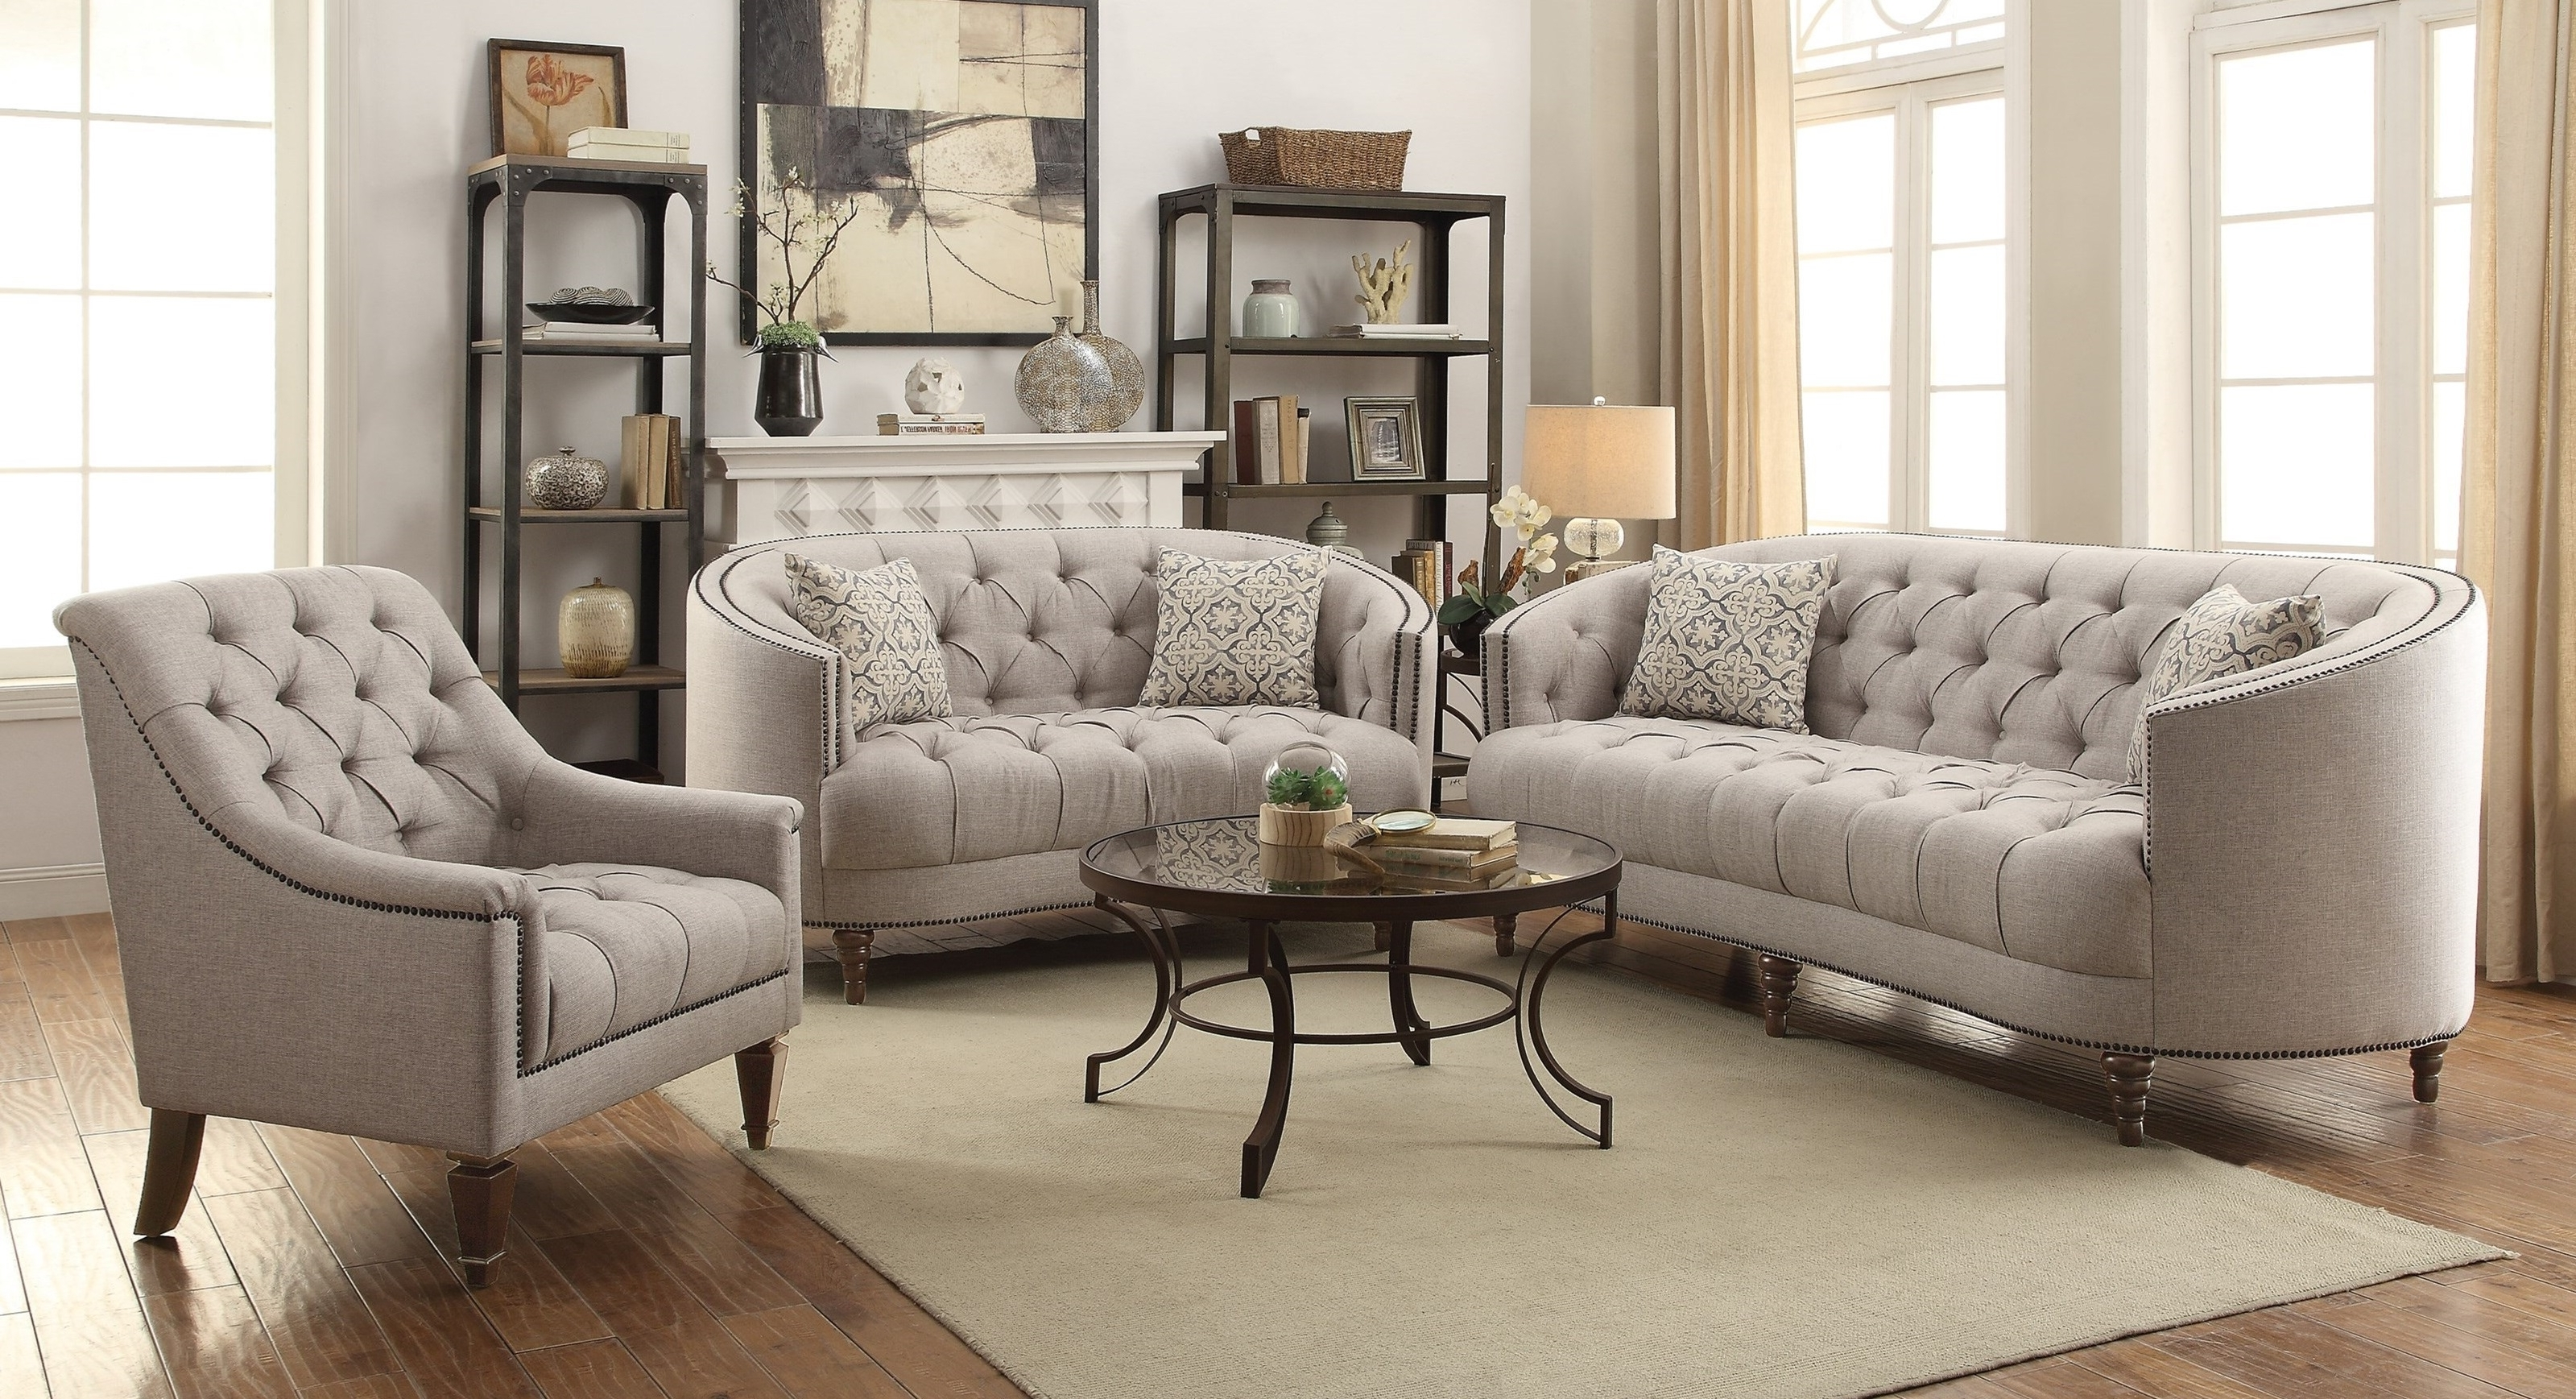 2019 C Shaped Sofas In Avonlea Sofa And Chair Set –  (View 1 of 20)